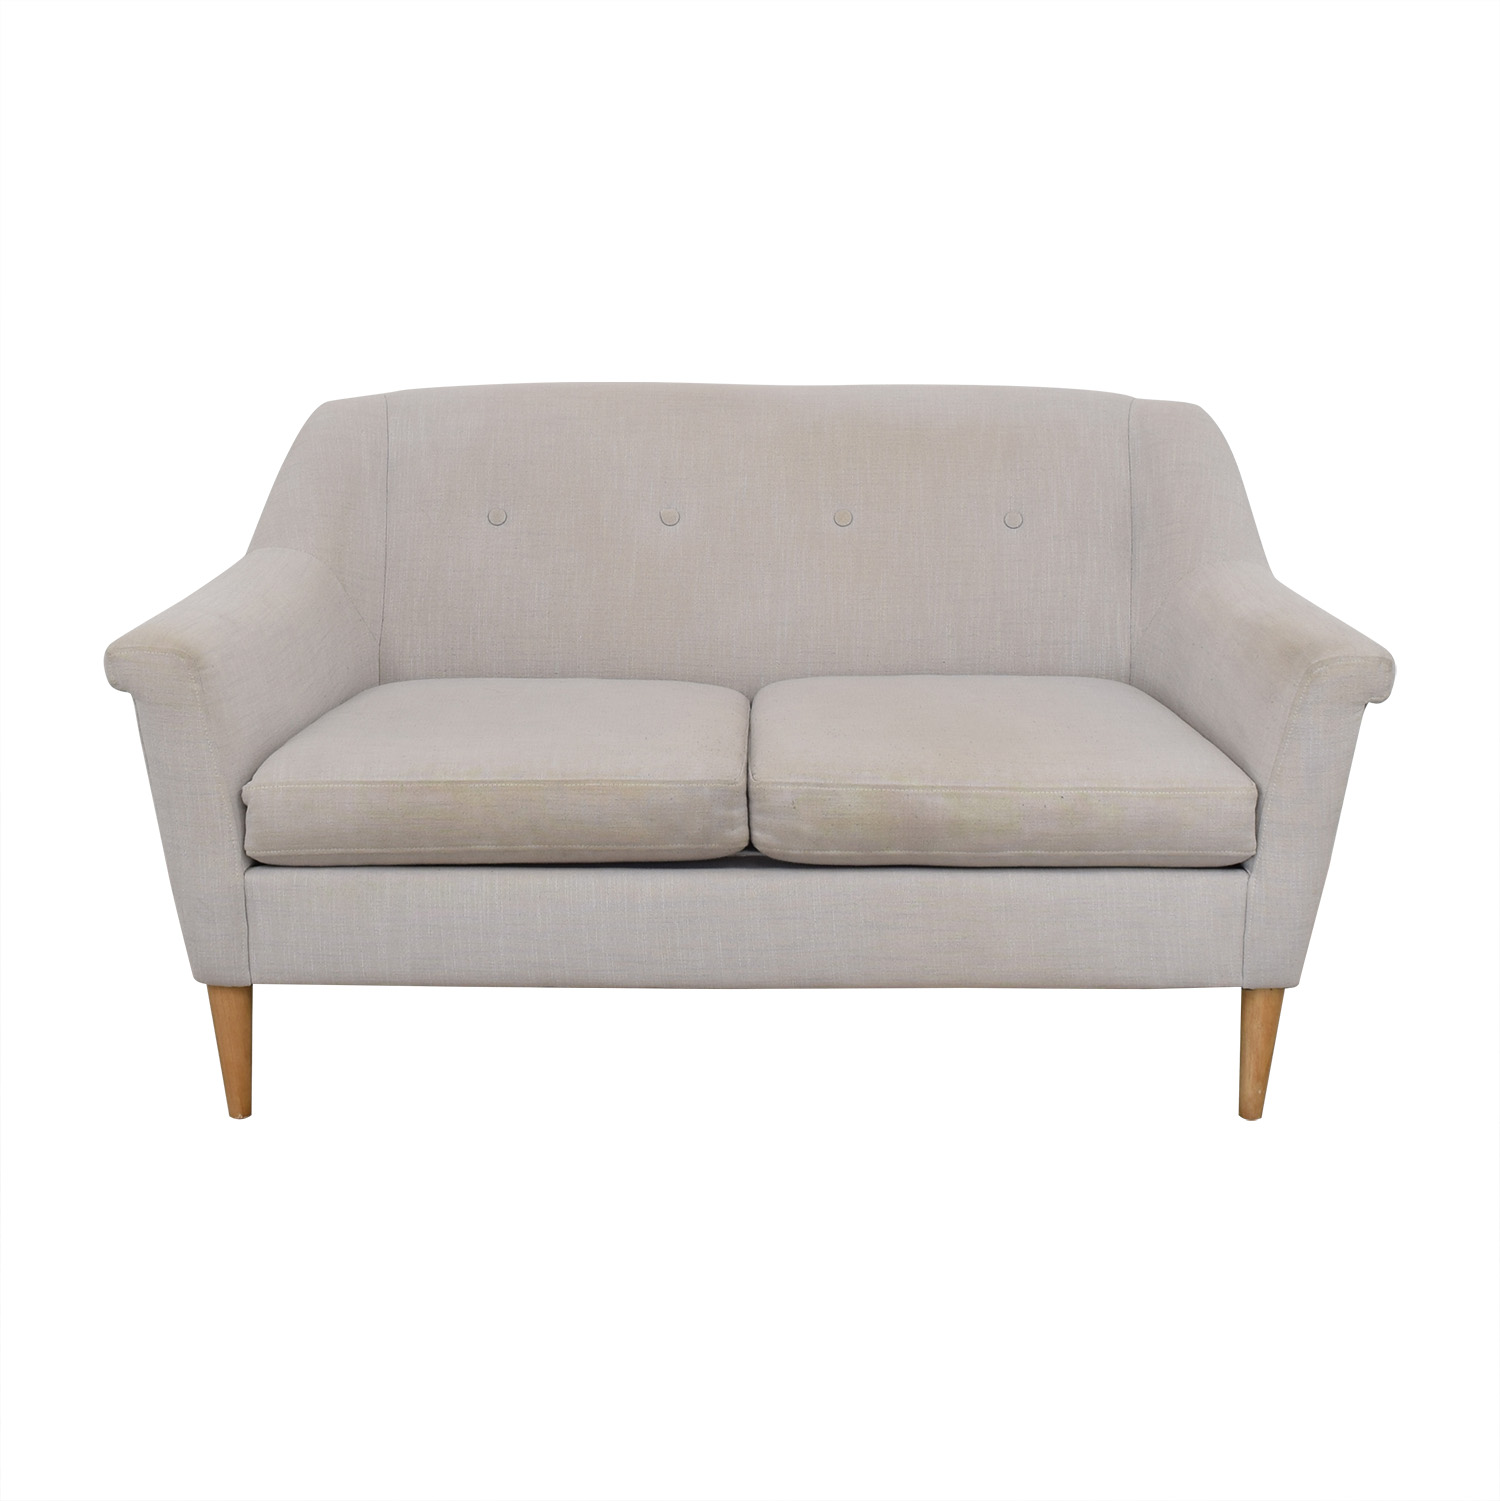 West Elm West Elm Finn Loveseat ct